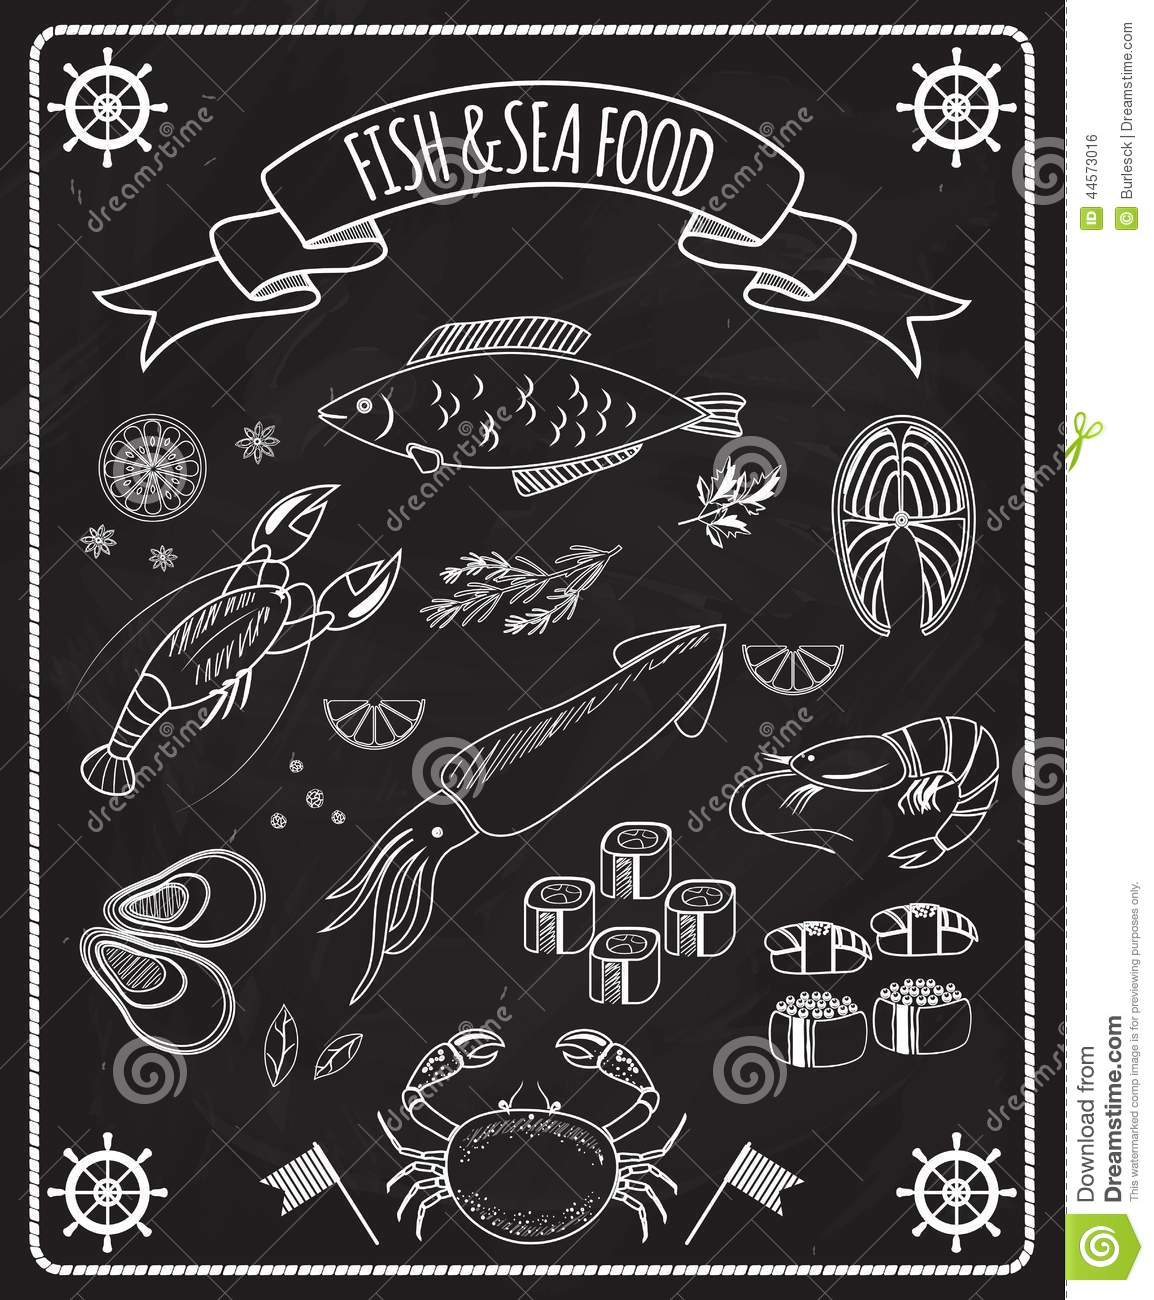 Fish And Seafood Blackboard Vector Elements Stock Vector ...